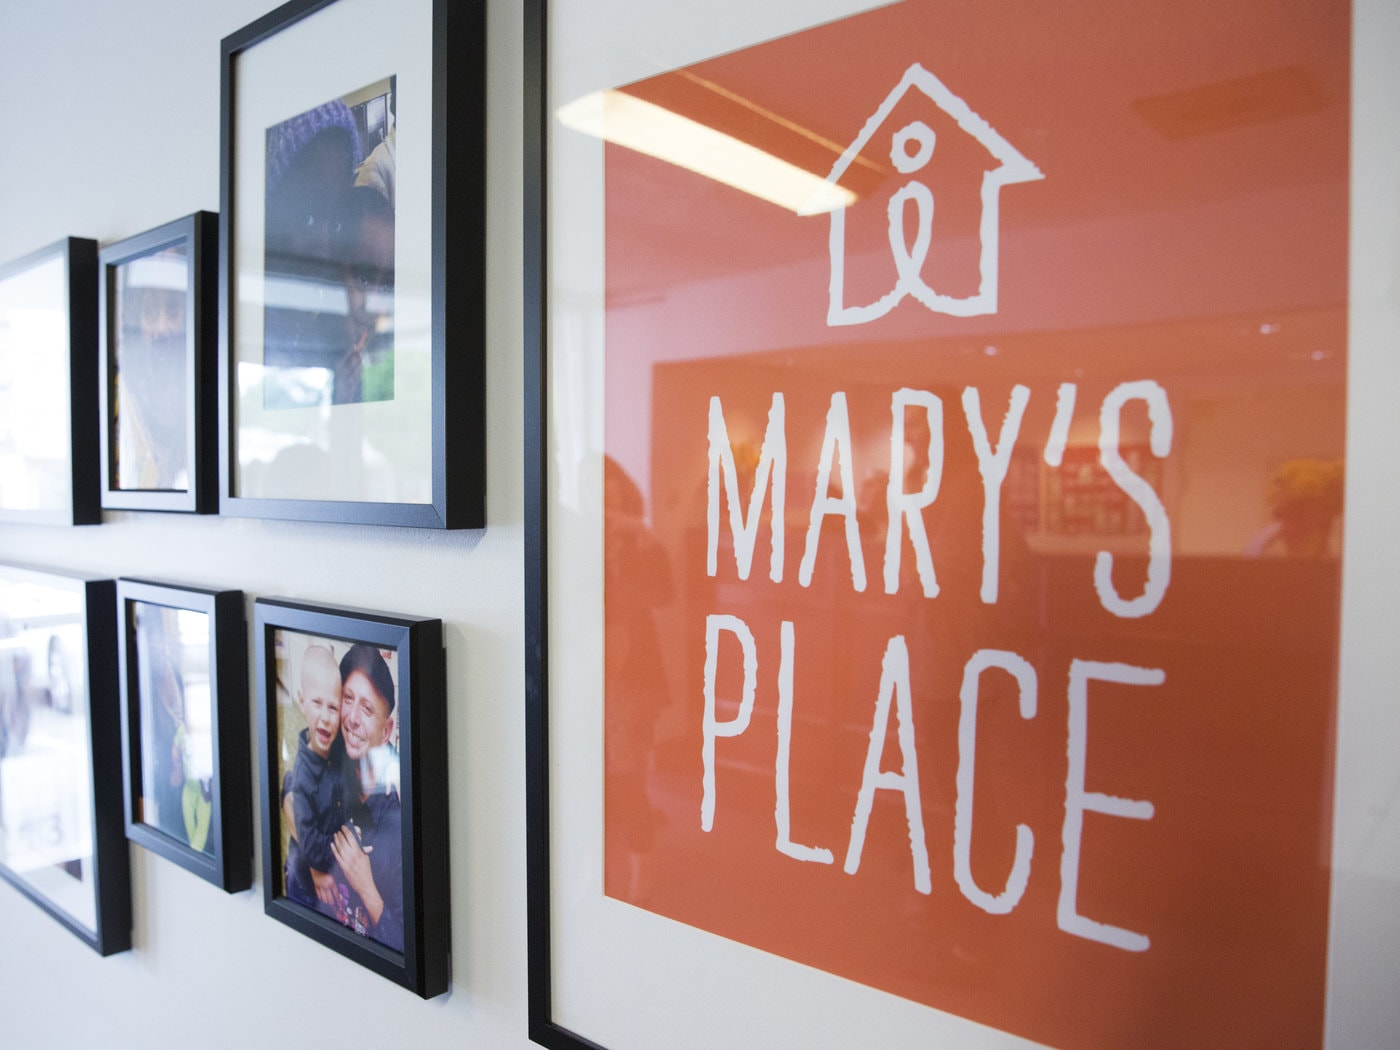 mary's place amazon seattle homeless shelter